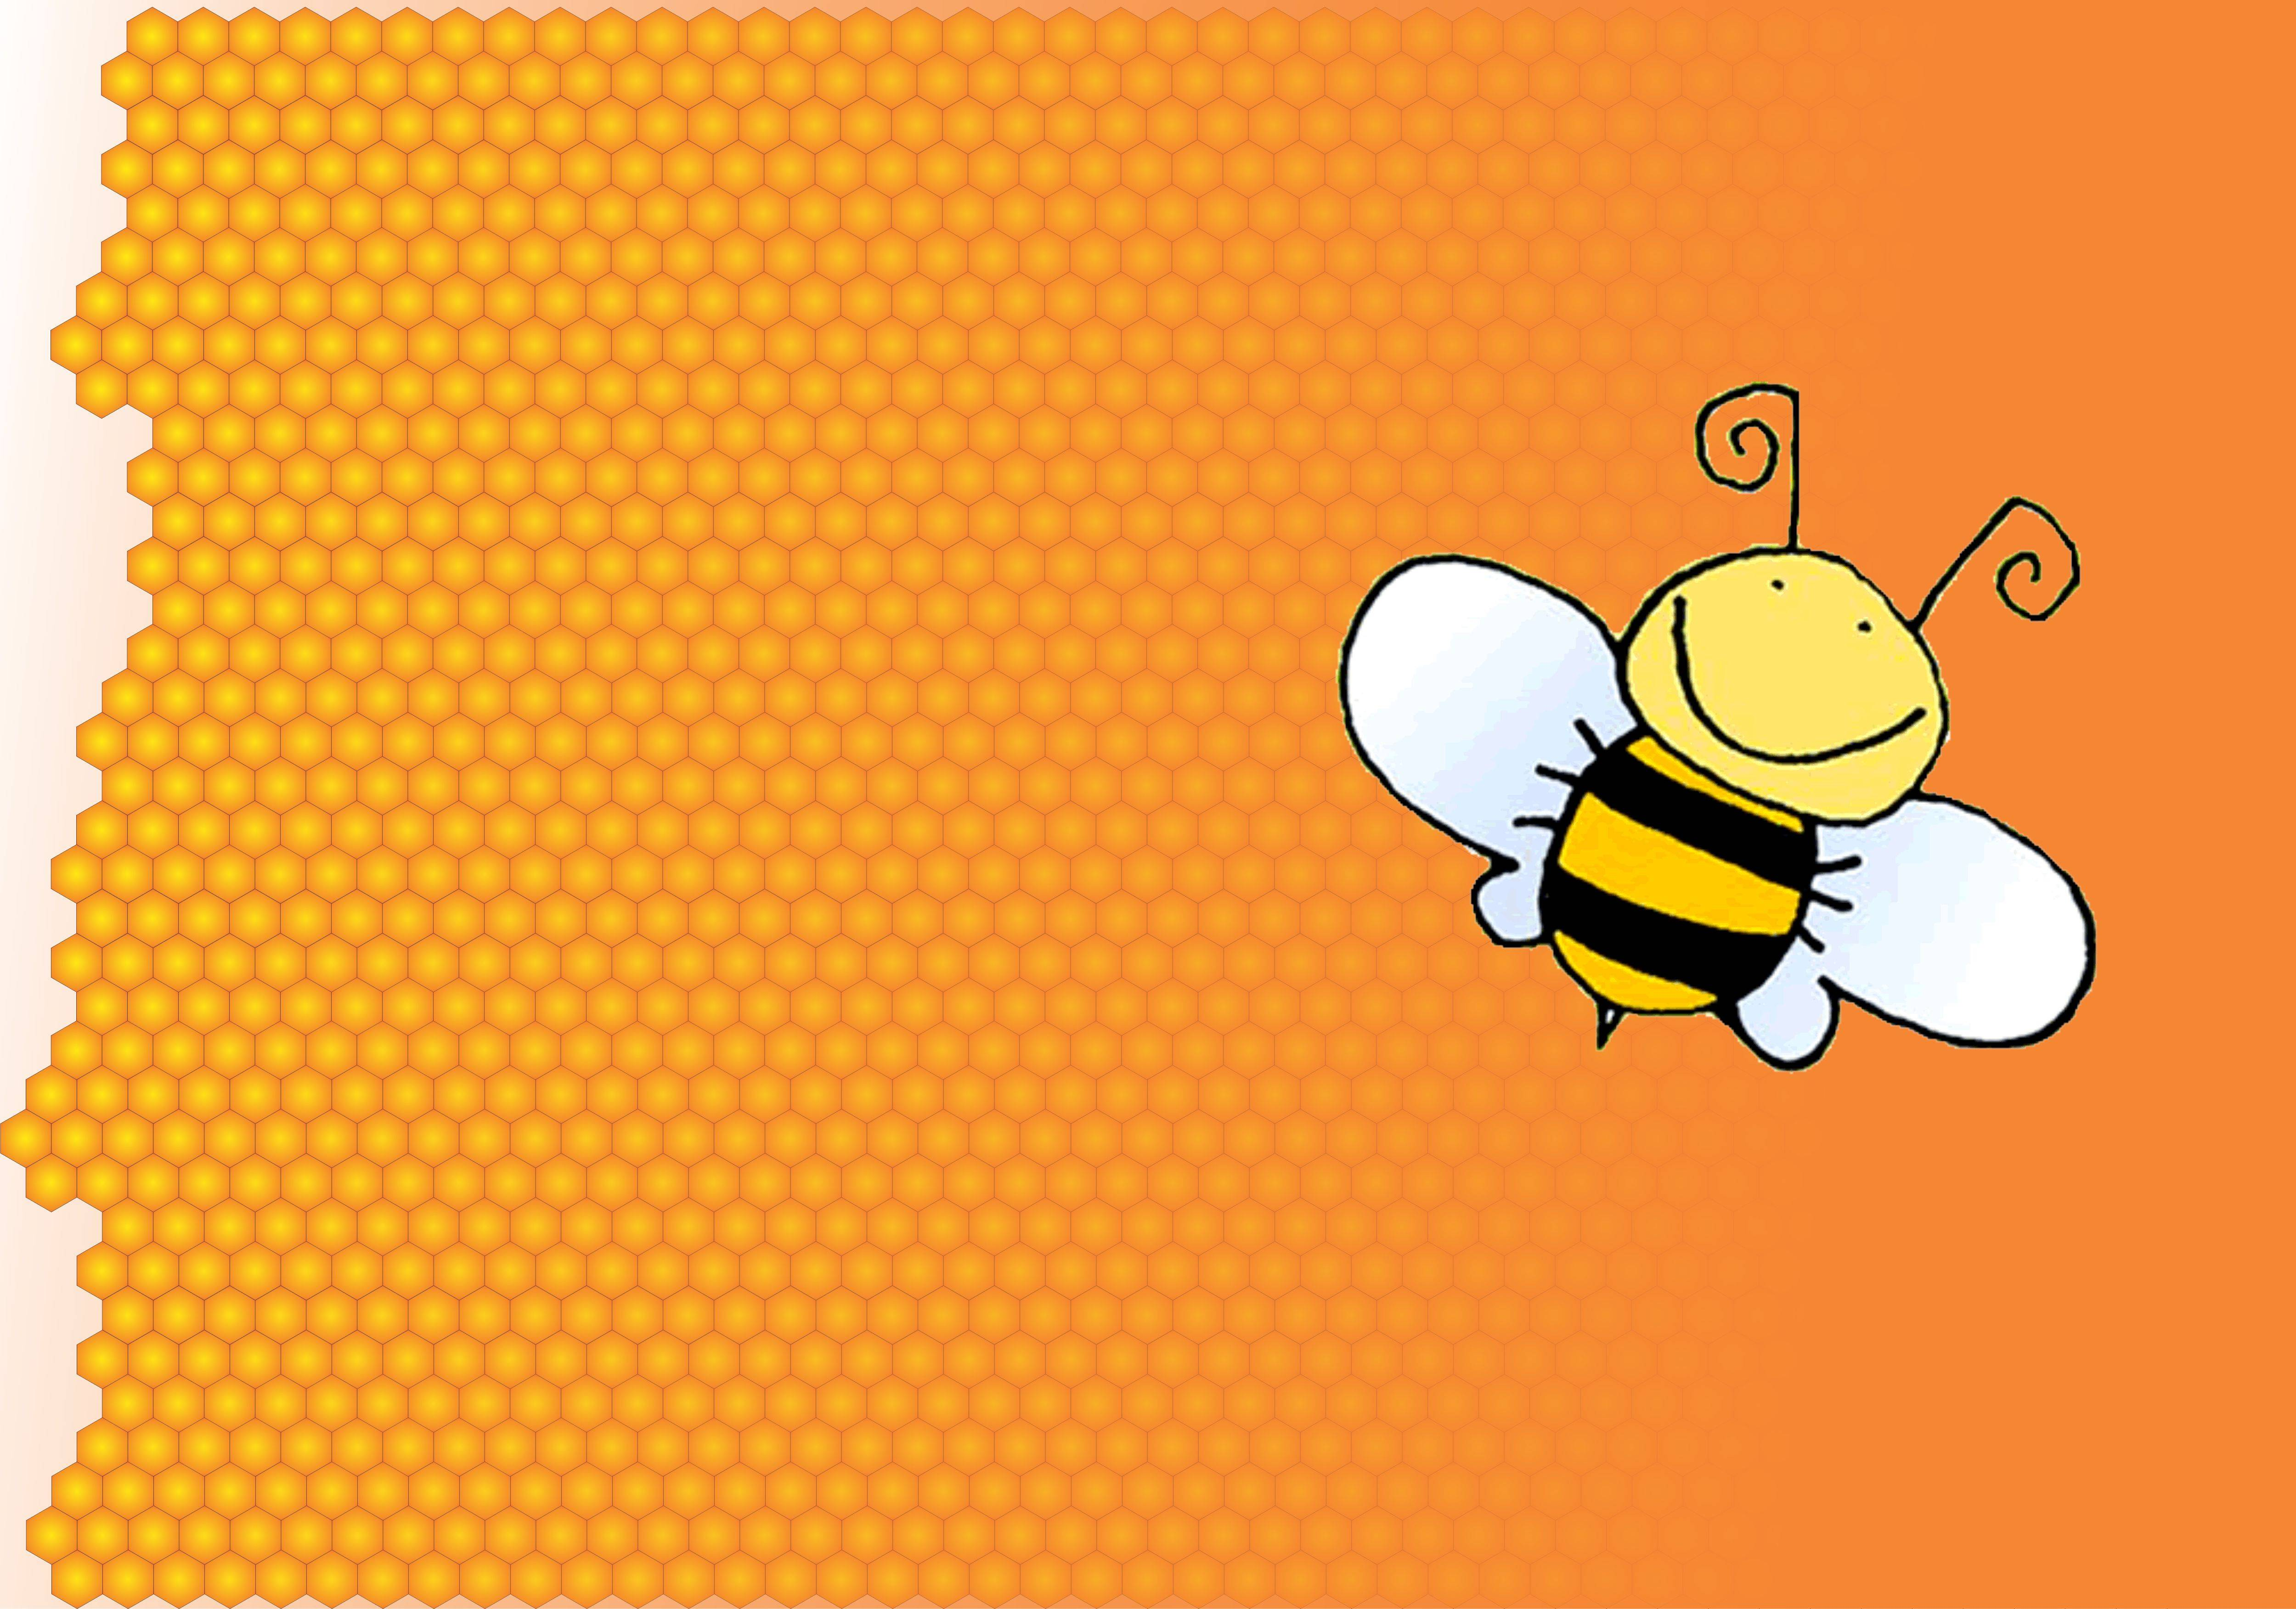 beehive wallpapers - photo #10